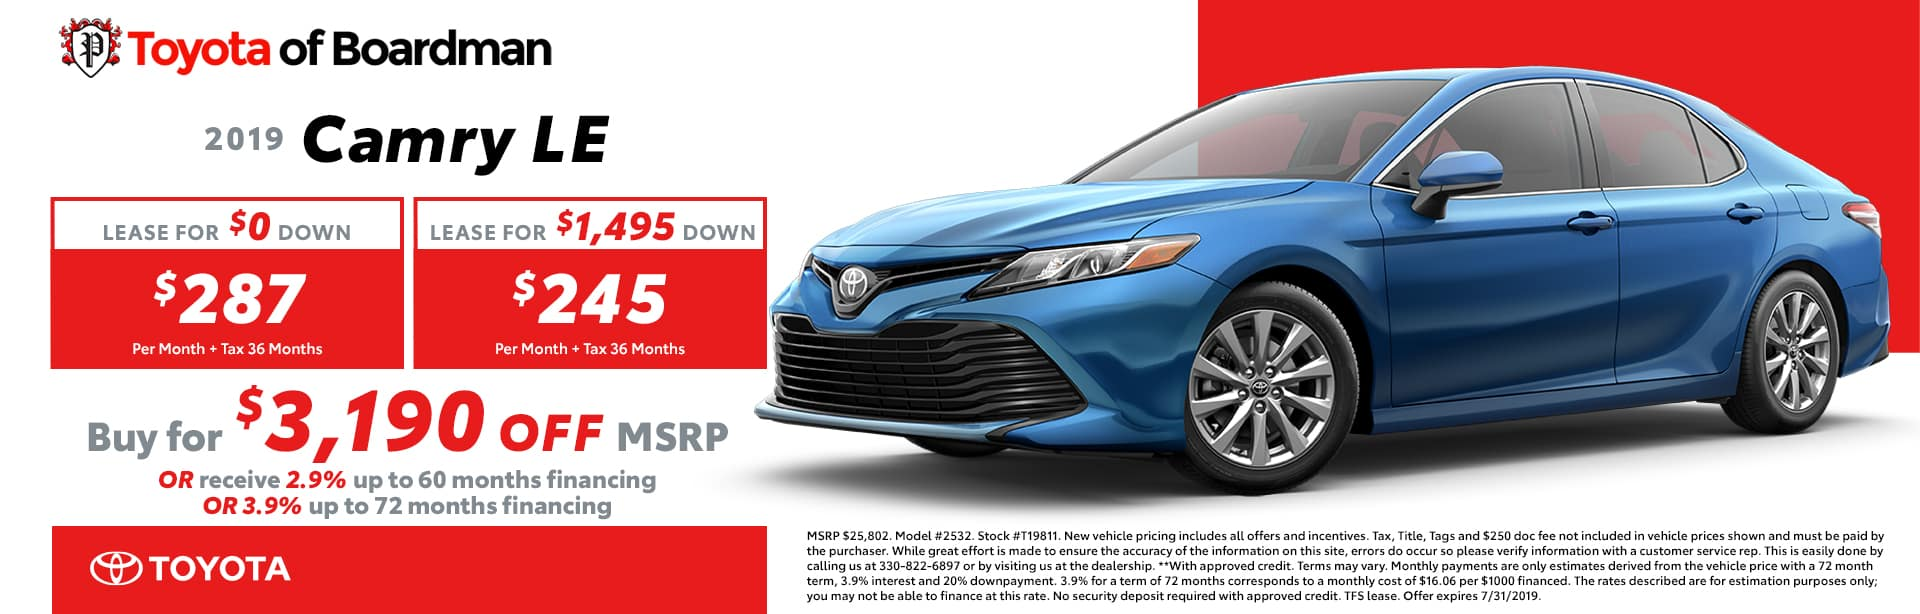 July special on the 2019 Toyota Camry